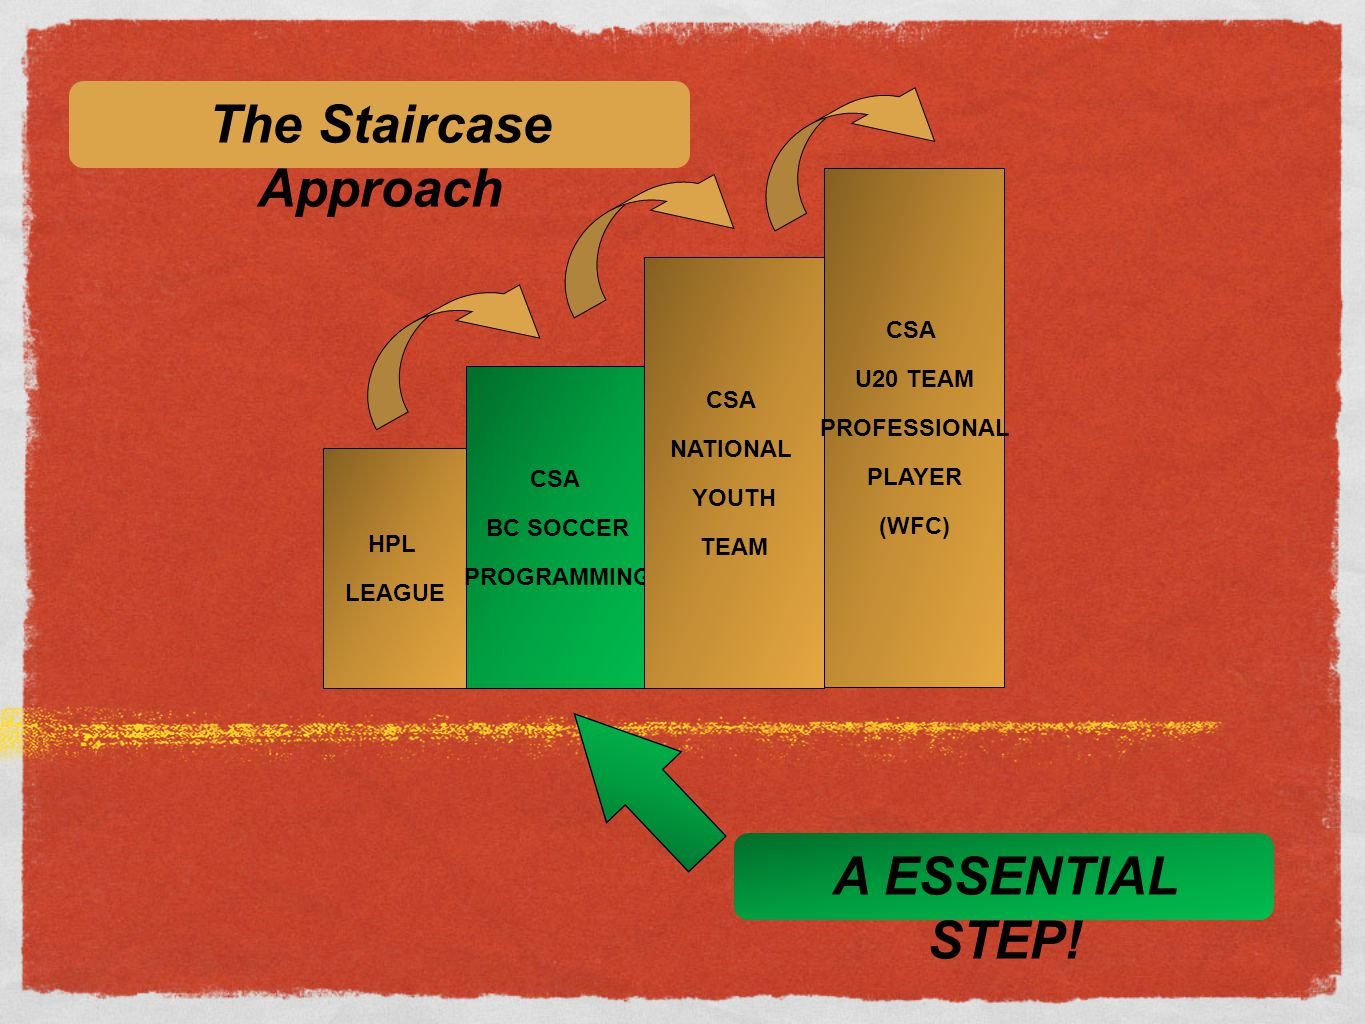 The Staircase Approach